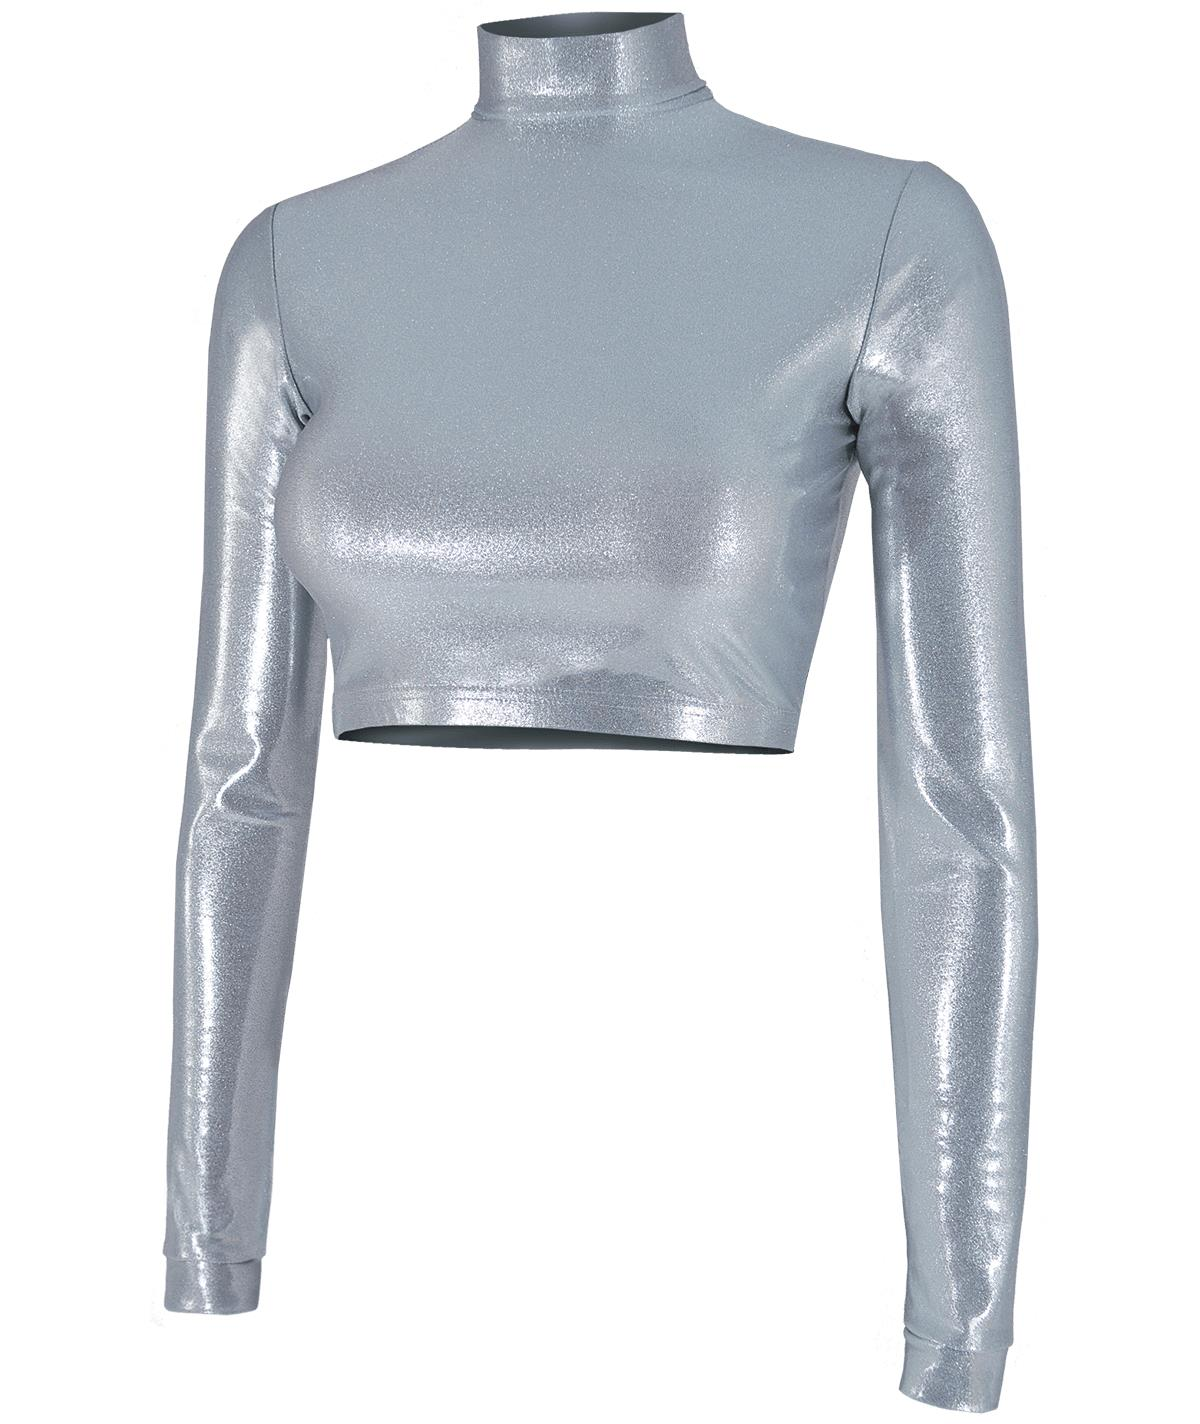 Chassé Metallic Cropped Bodysuit